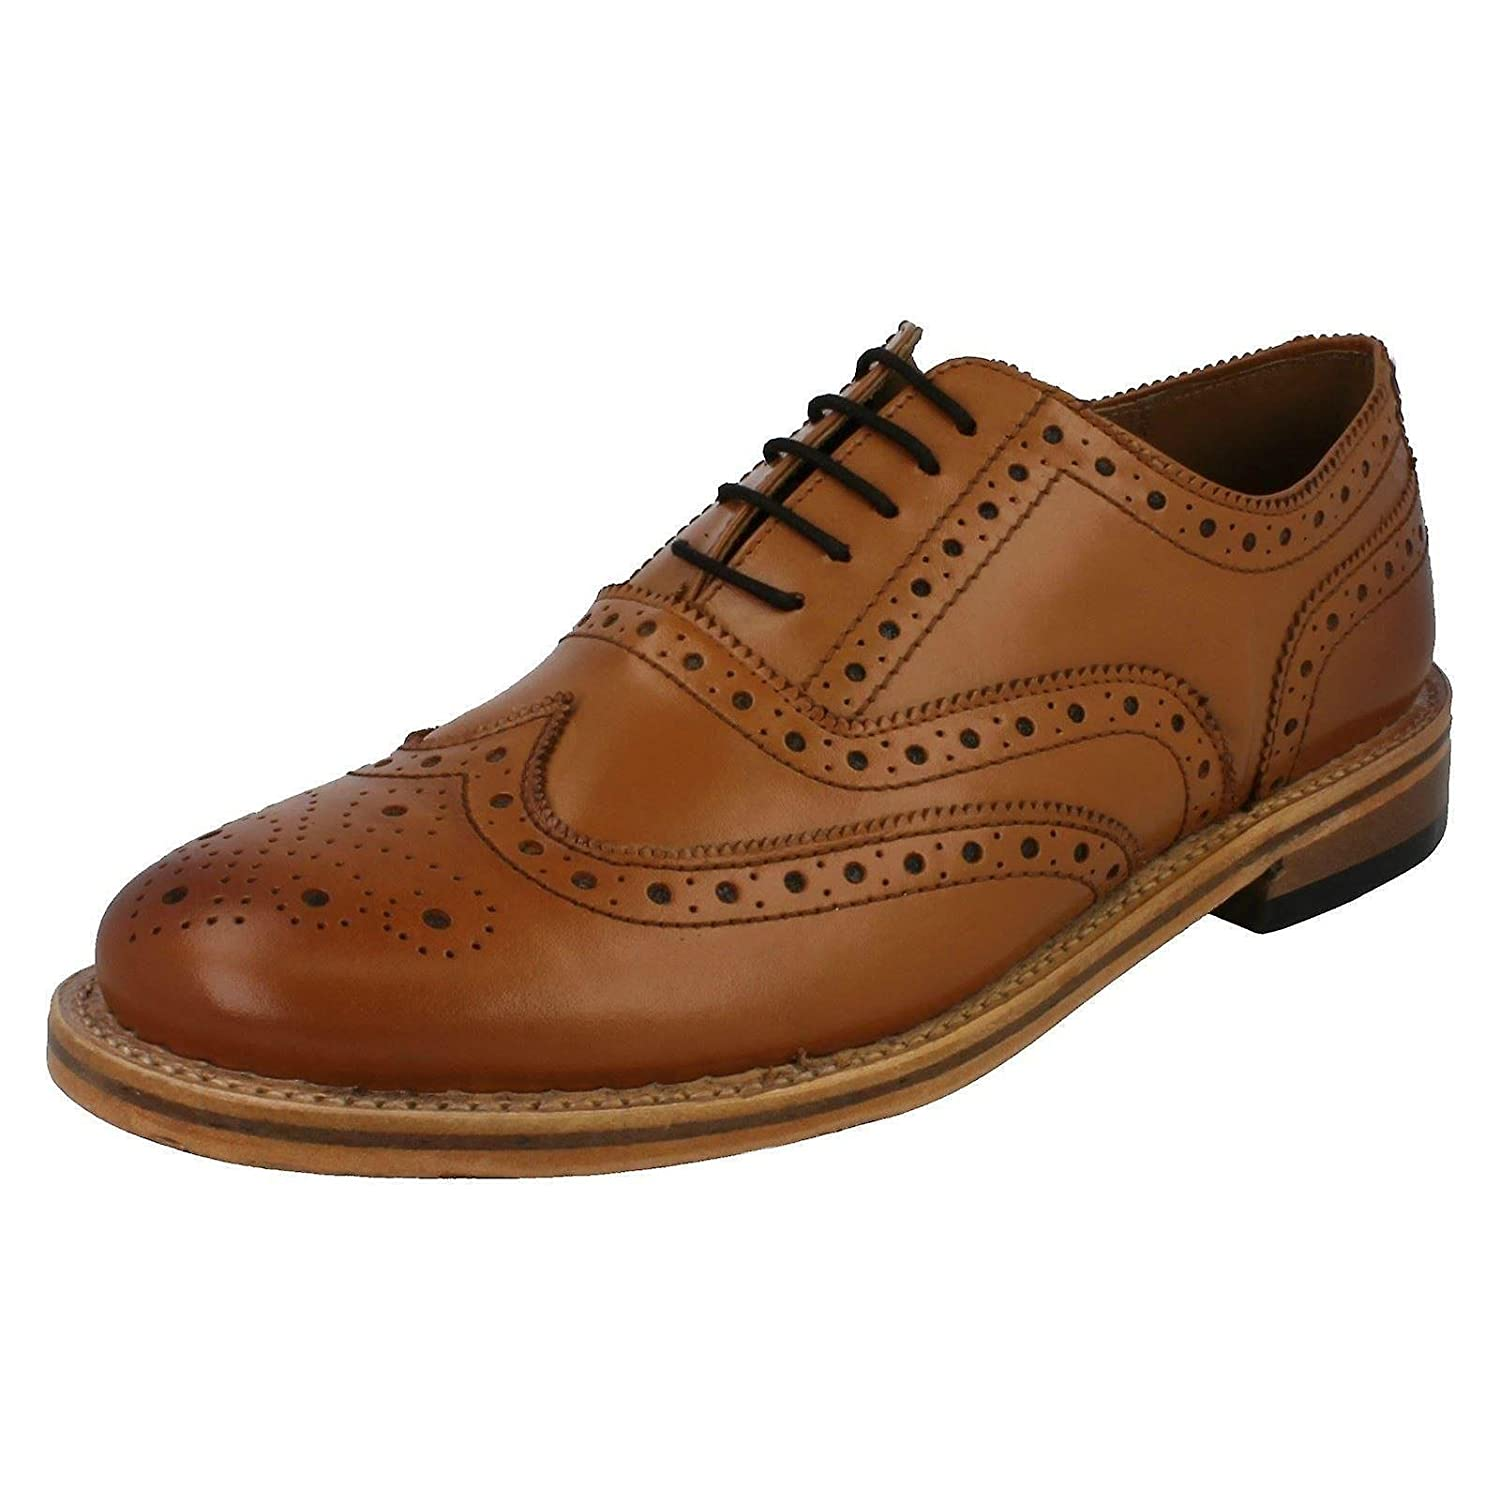 MENS LEATHER TAN BROGUE OFFICE CASUAL SMART LACE UP FORMAL PARTY SHOES SIZE  6-12  Amazon.co.uk  Shoes   Bags 533272faa